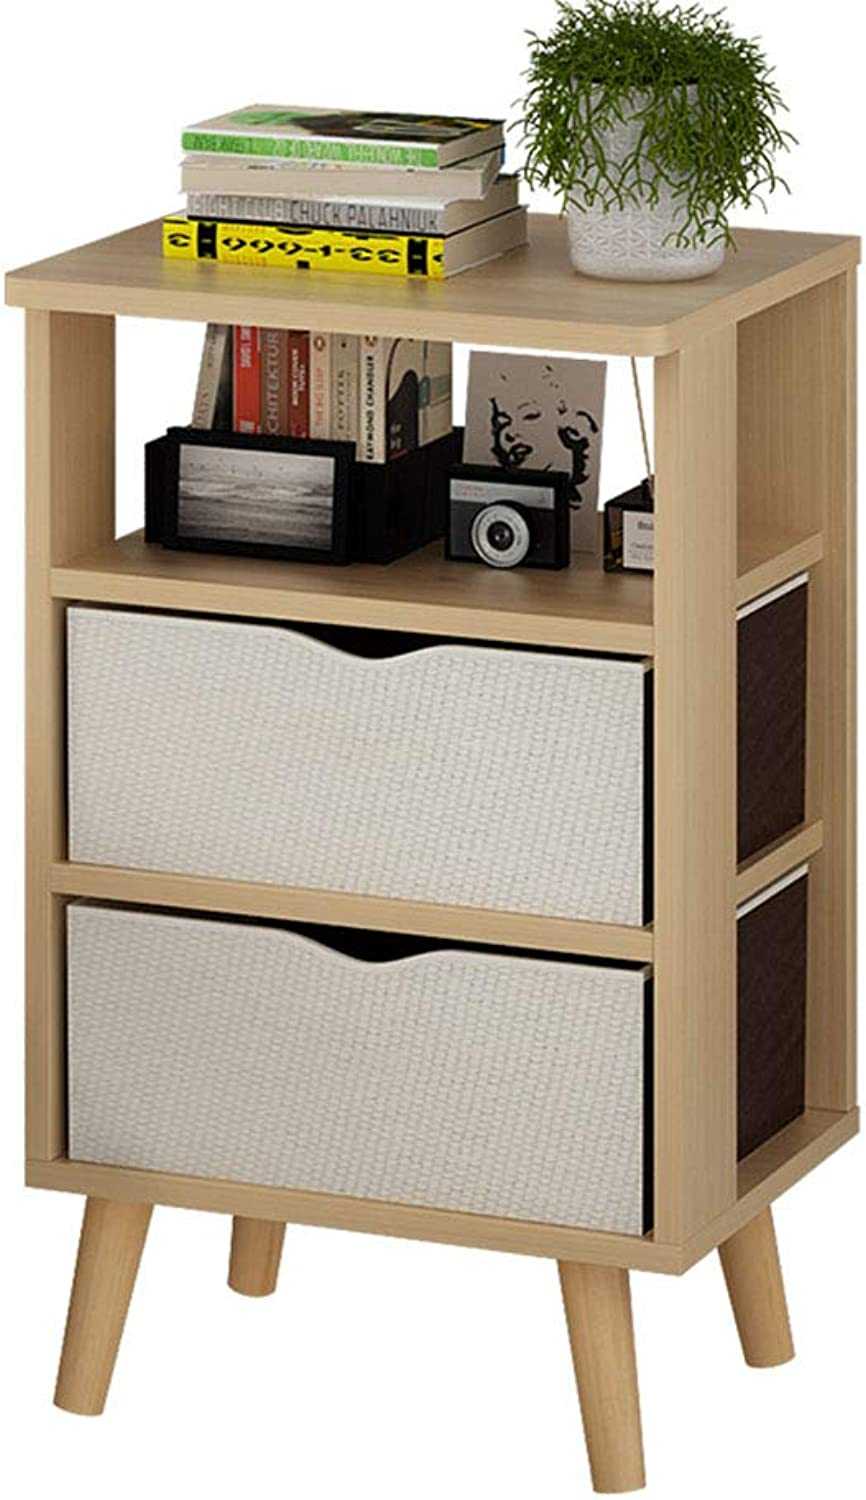 XIAODONG Nordic Style Bedside Table Side Table Locker with 2 Cloth Drawer,37 x 27 x 61CM. Easy to Move (color   Wood color)